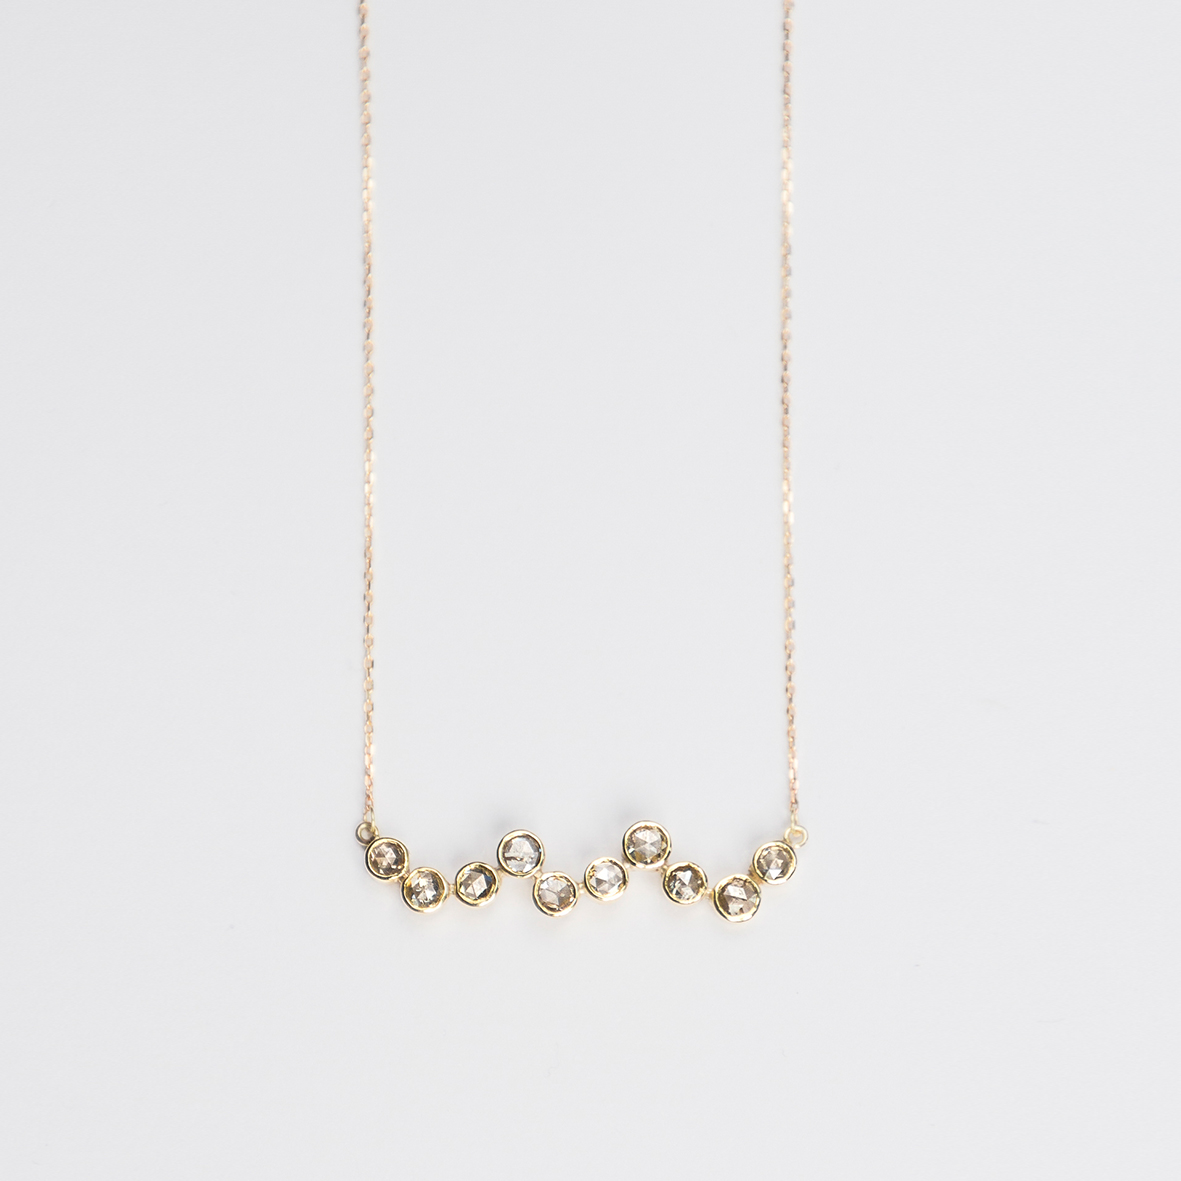 1. OONA_philo_ficha1_waves diamond necklace